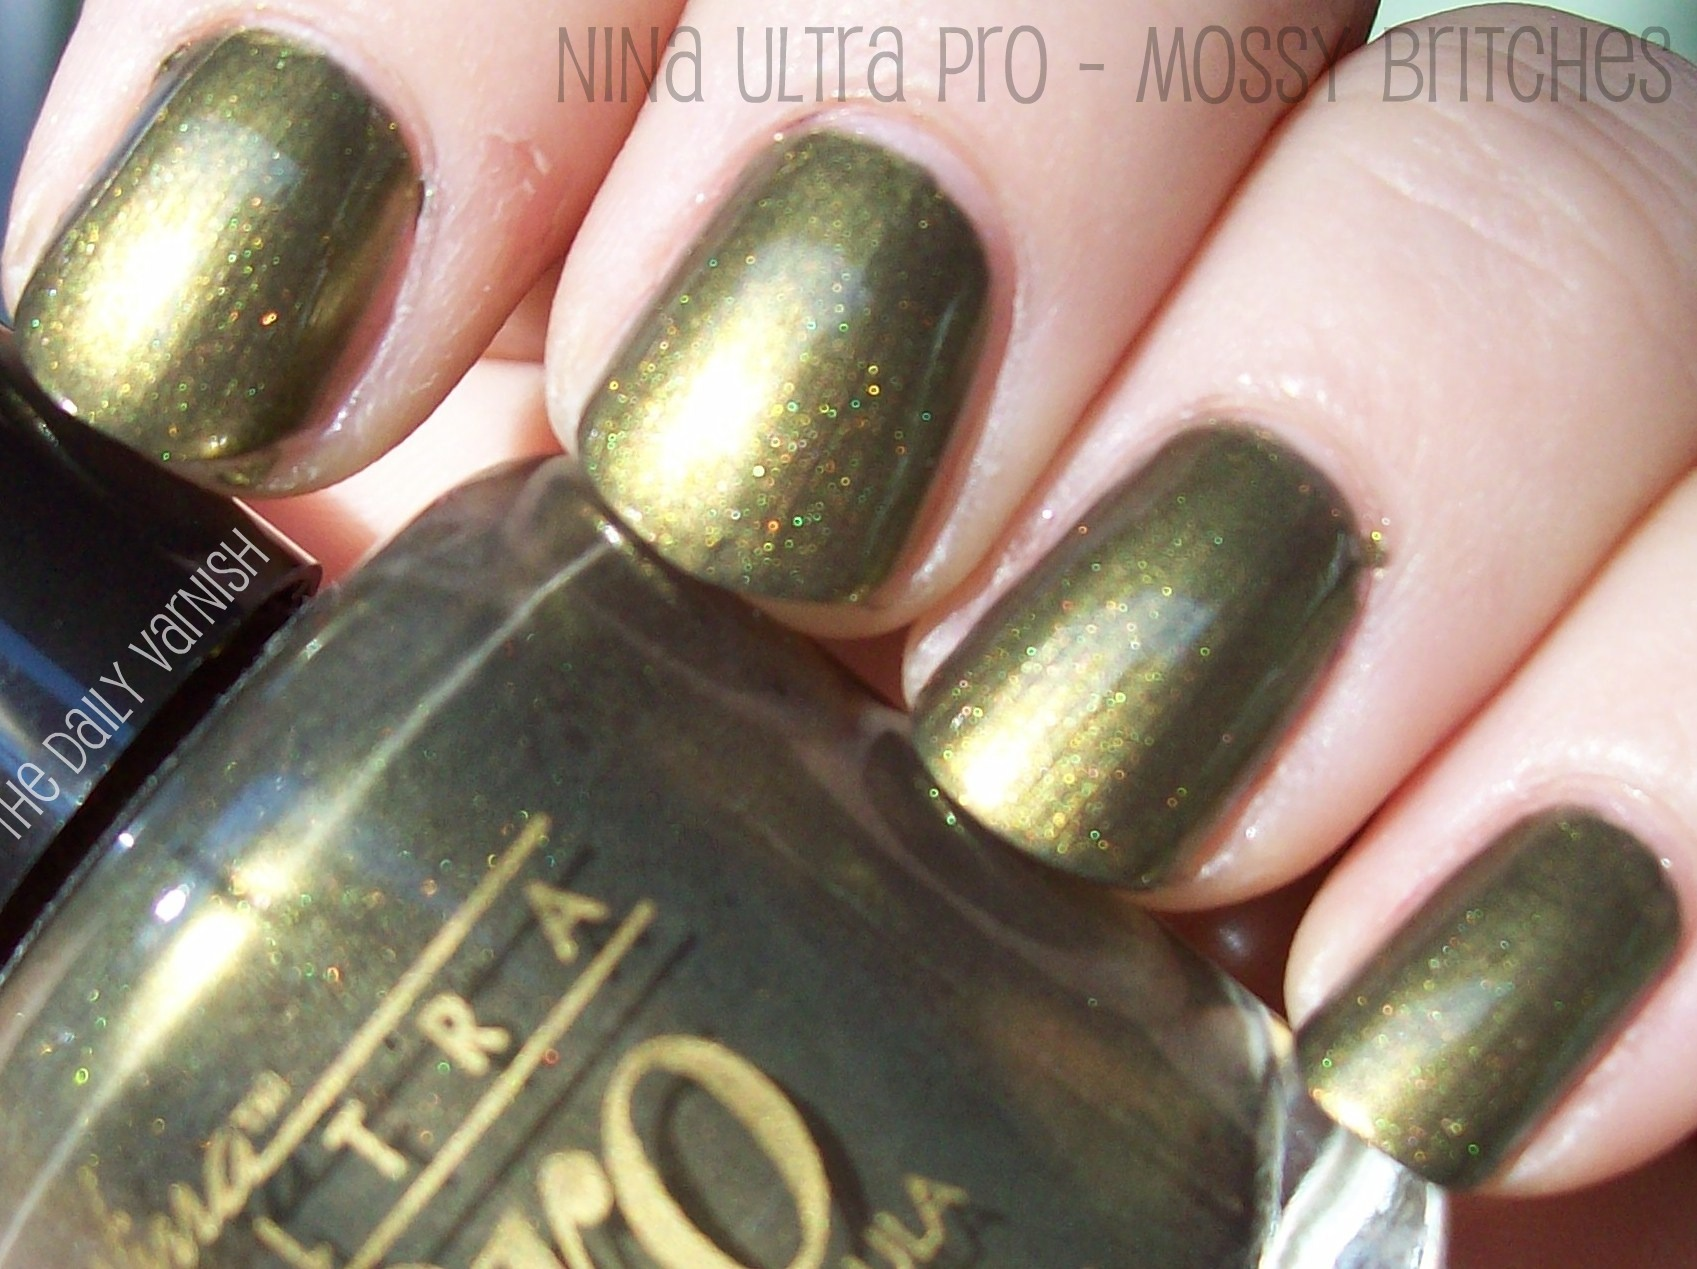 Nina Ultra Pro – Mossy Britches – The Daily Varnish